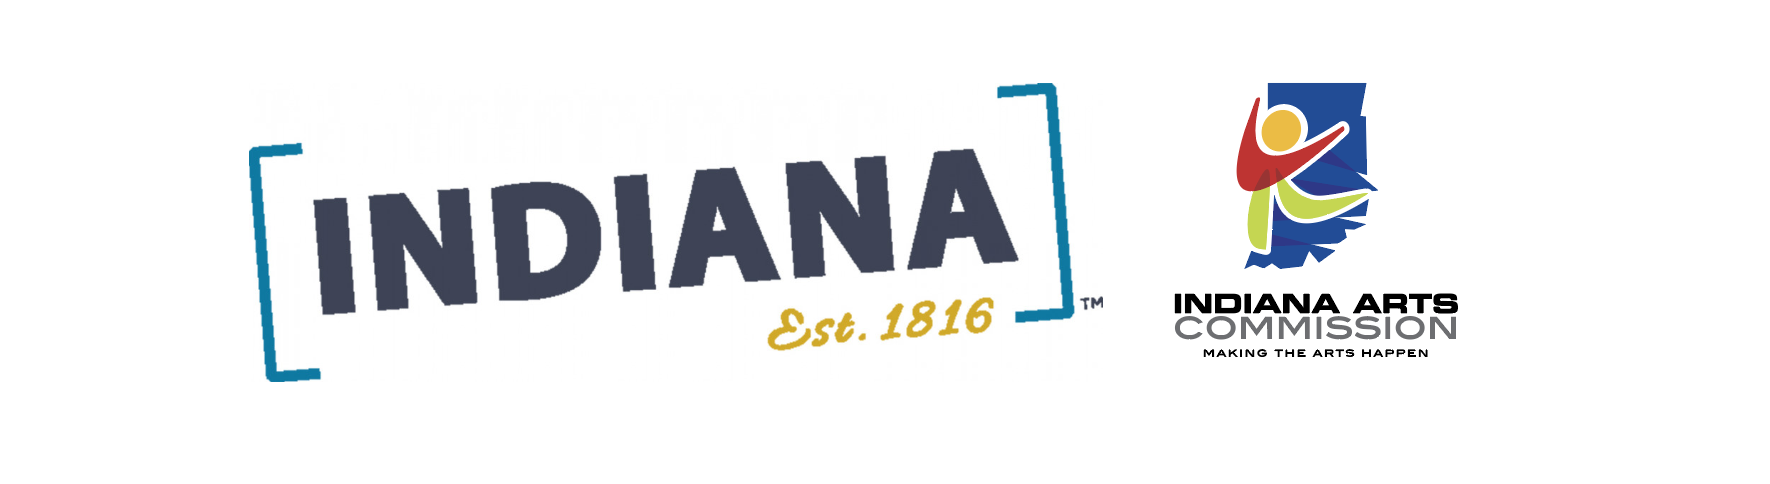 Visit Indiana and Indiana Arts Commission logos